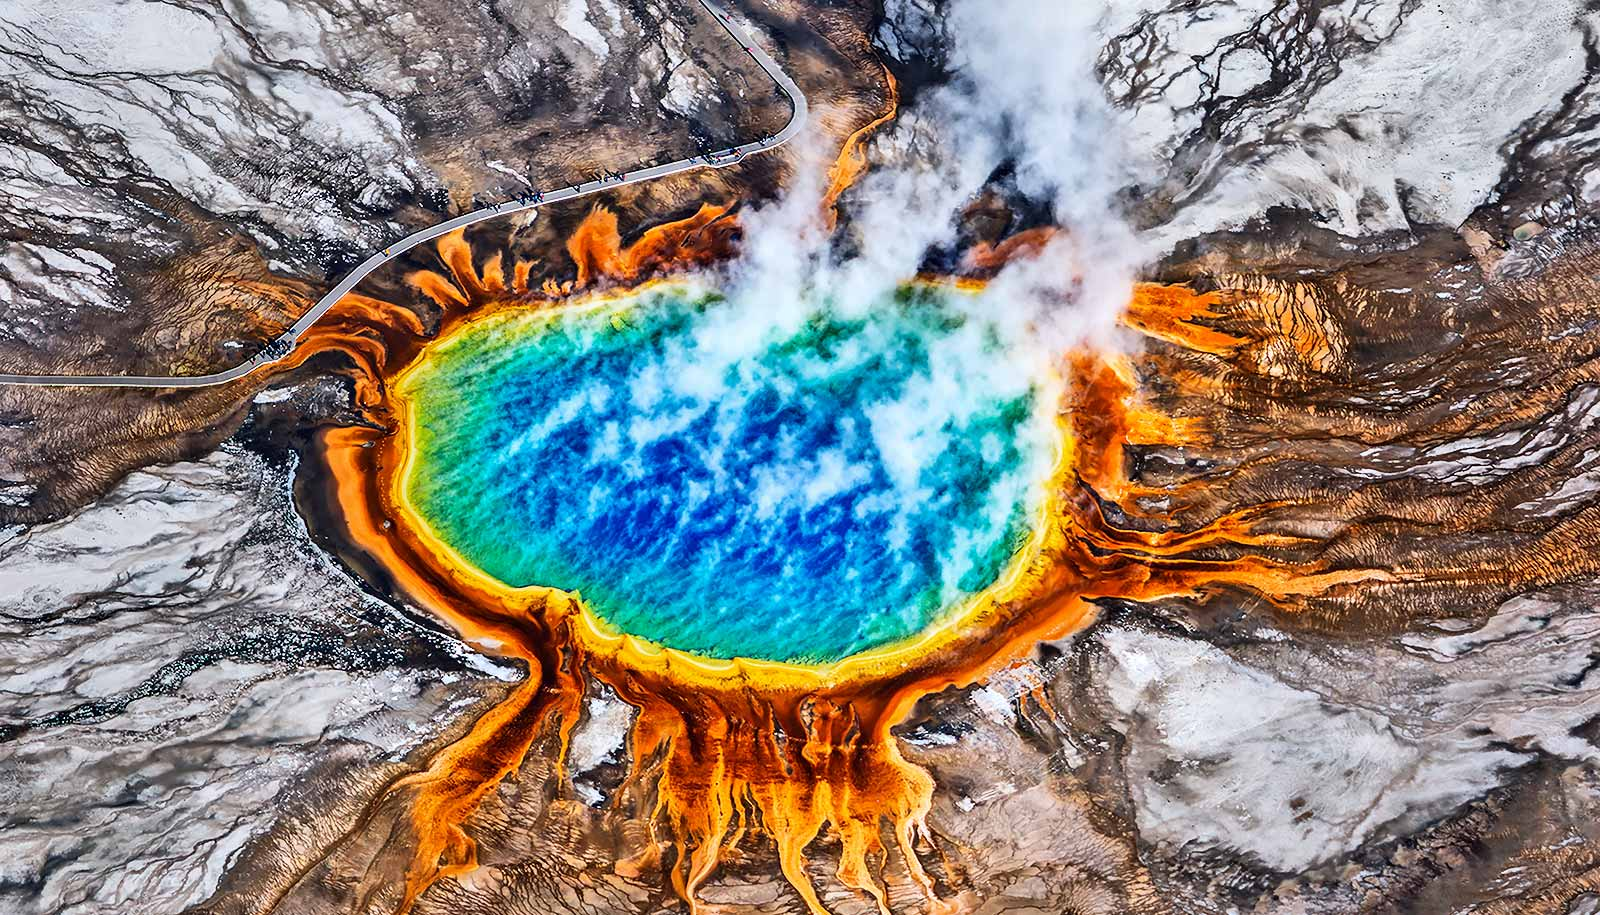 Virus that infects hot spring bacteria has tricks we could steal